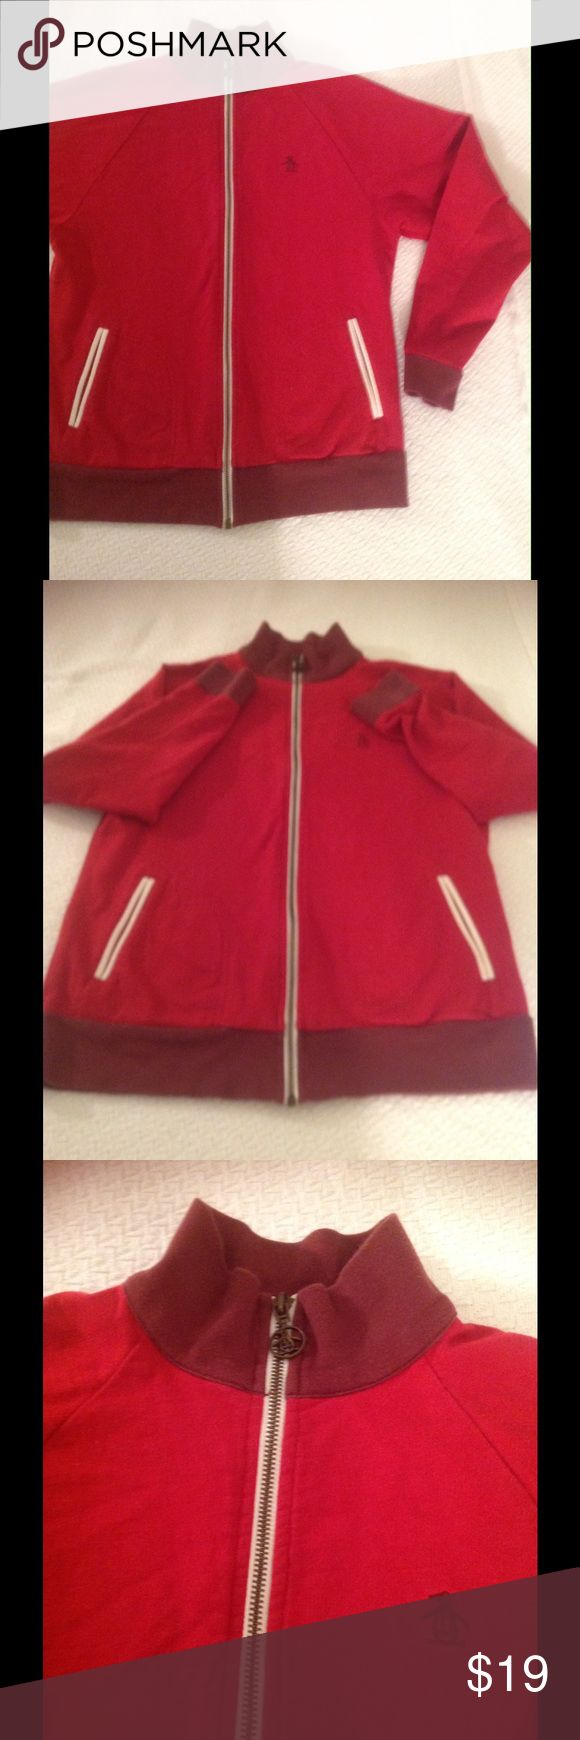 Track Style Light weight jacket slim fit This is a penguin for kids track jacket lightweight slim fit the penguin brand has a great cut in their clothing it always looks very nice and sharp. Jackets & Coats